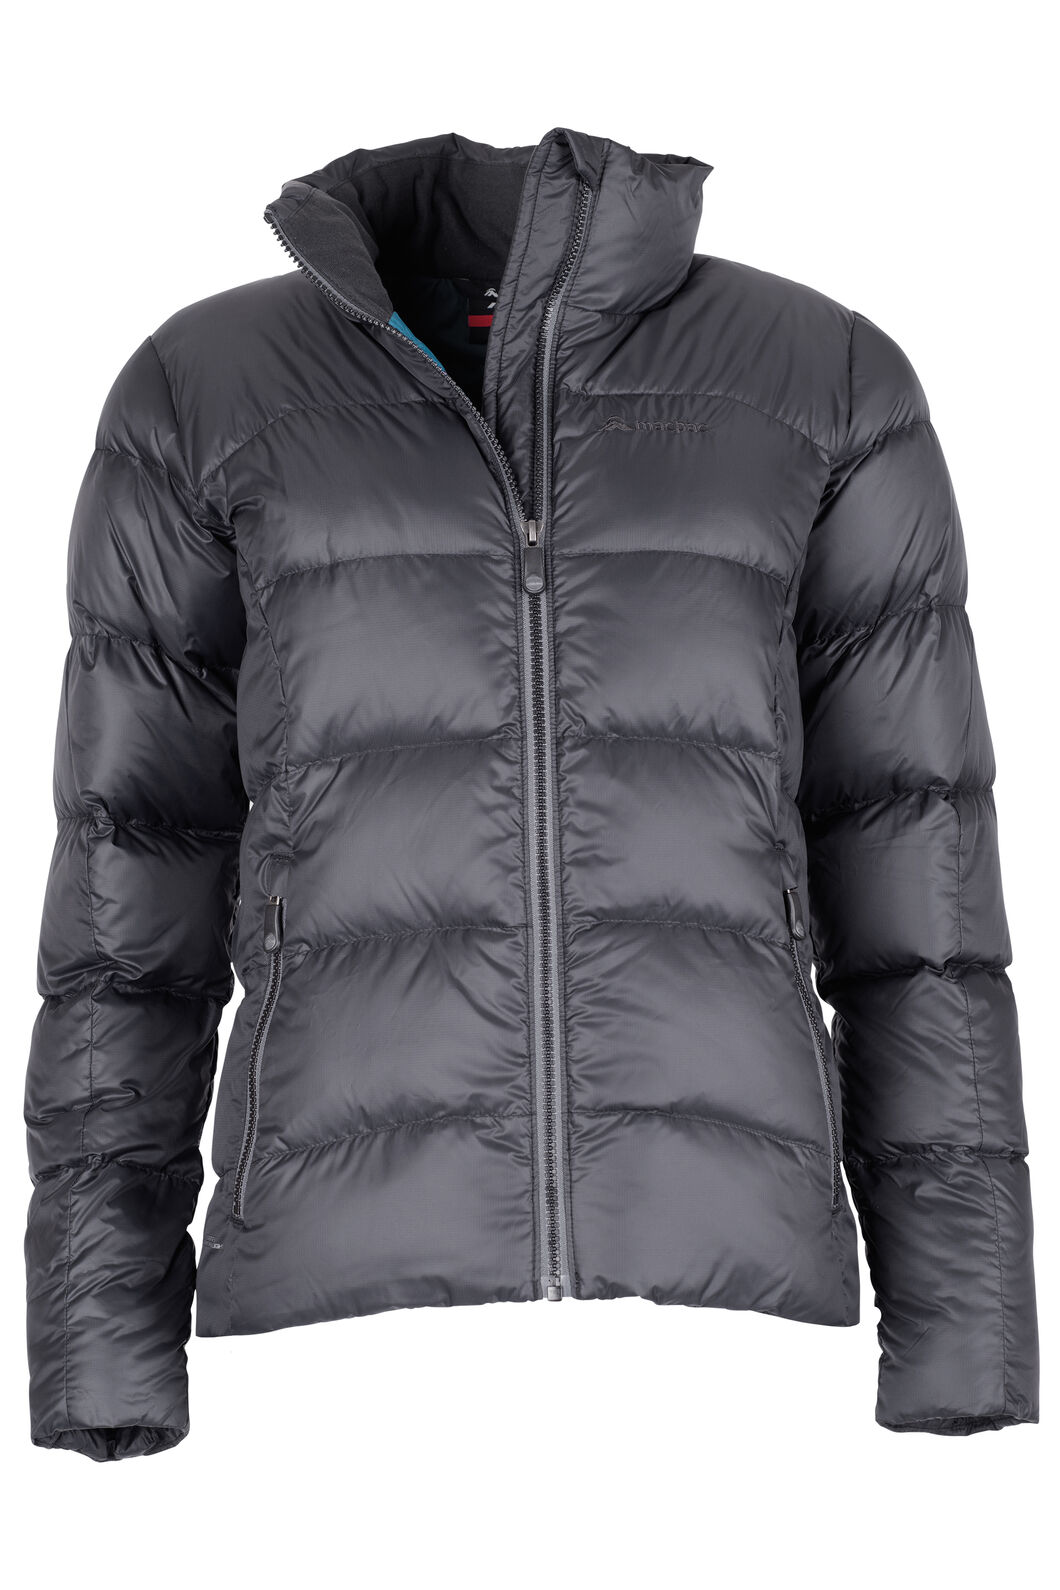 Macpac Sundowner HyperDRY™ Down Jacket - Women's, Black, hi-res